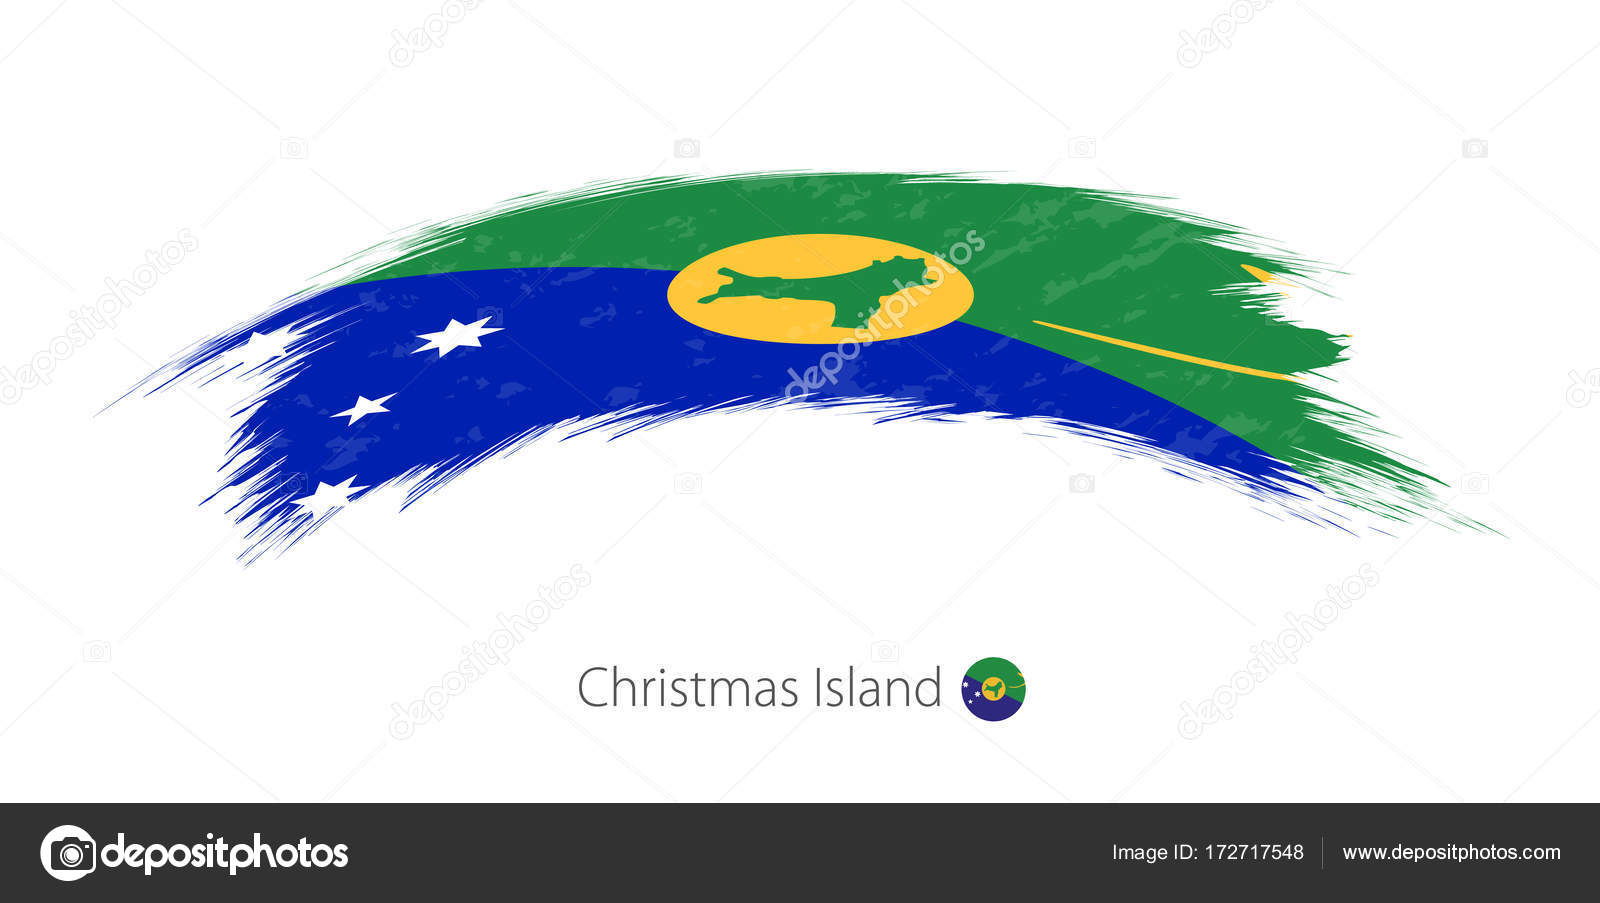 Christmas Island Flag.Flag Of Christmas Island In Rounded Grunge Brush Stroke